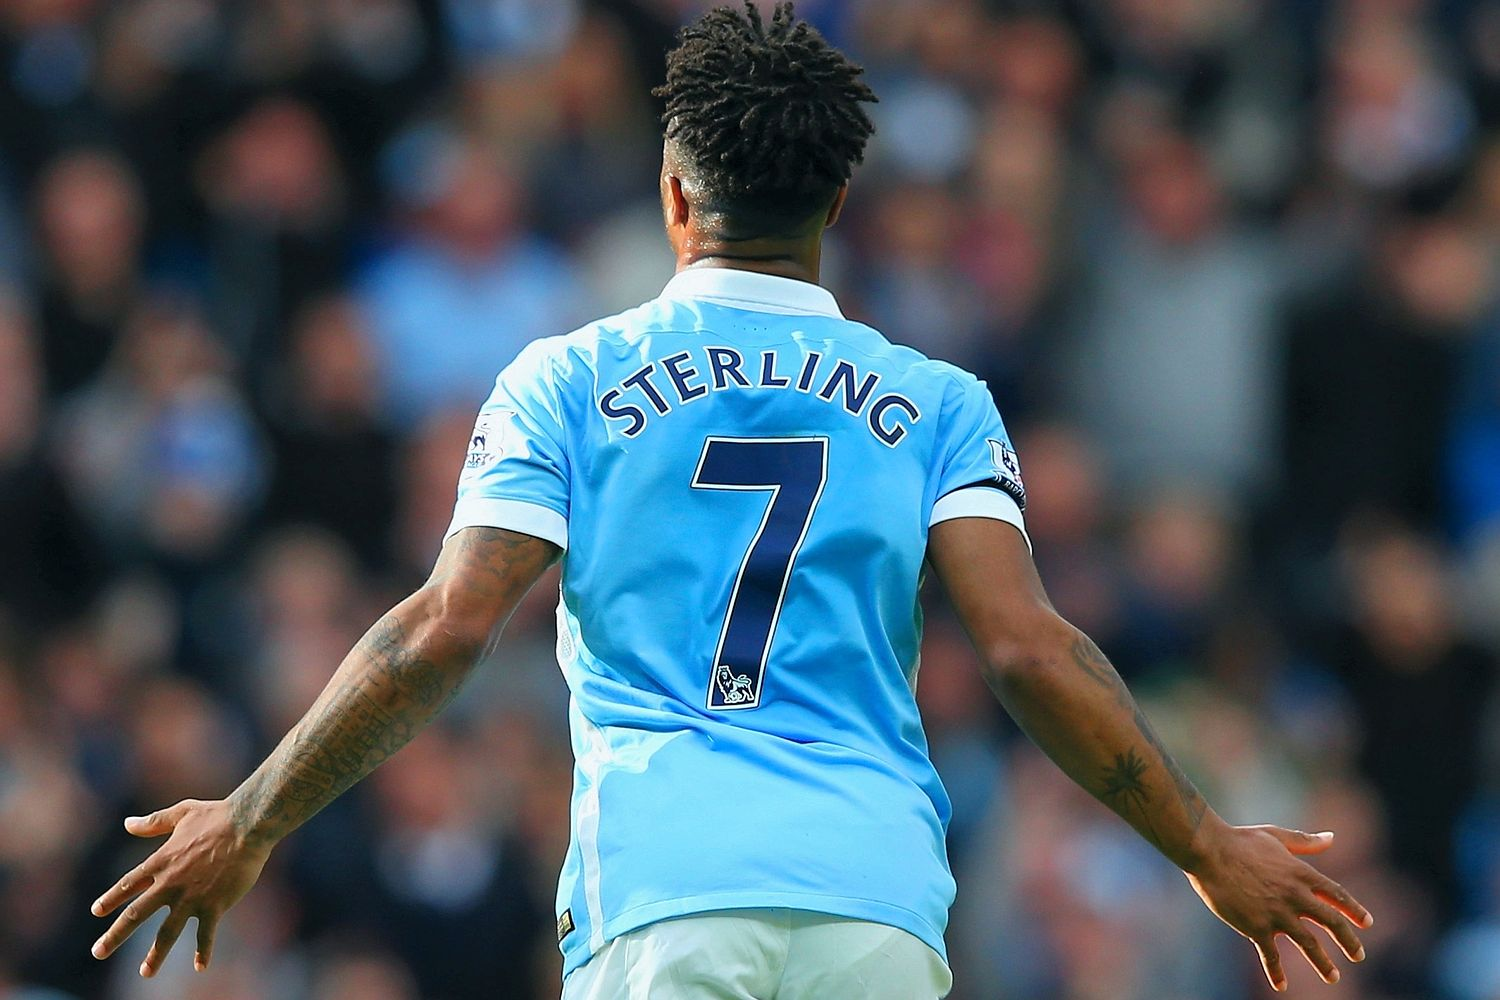 Sterling at photo - 9